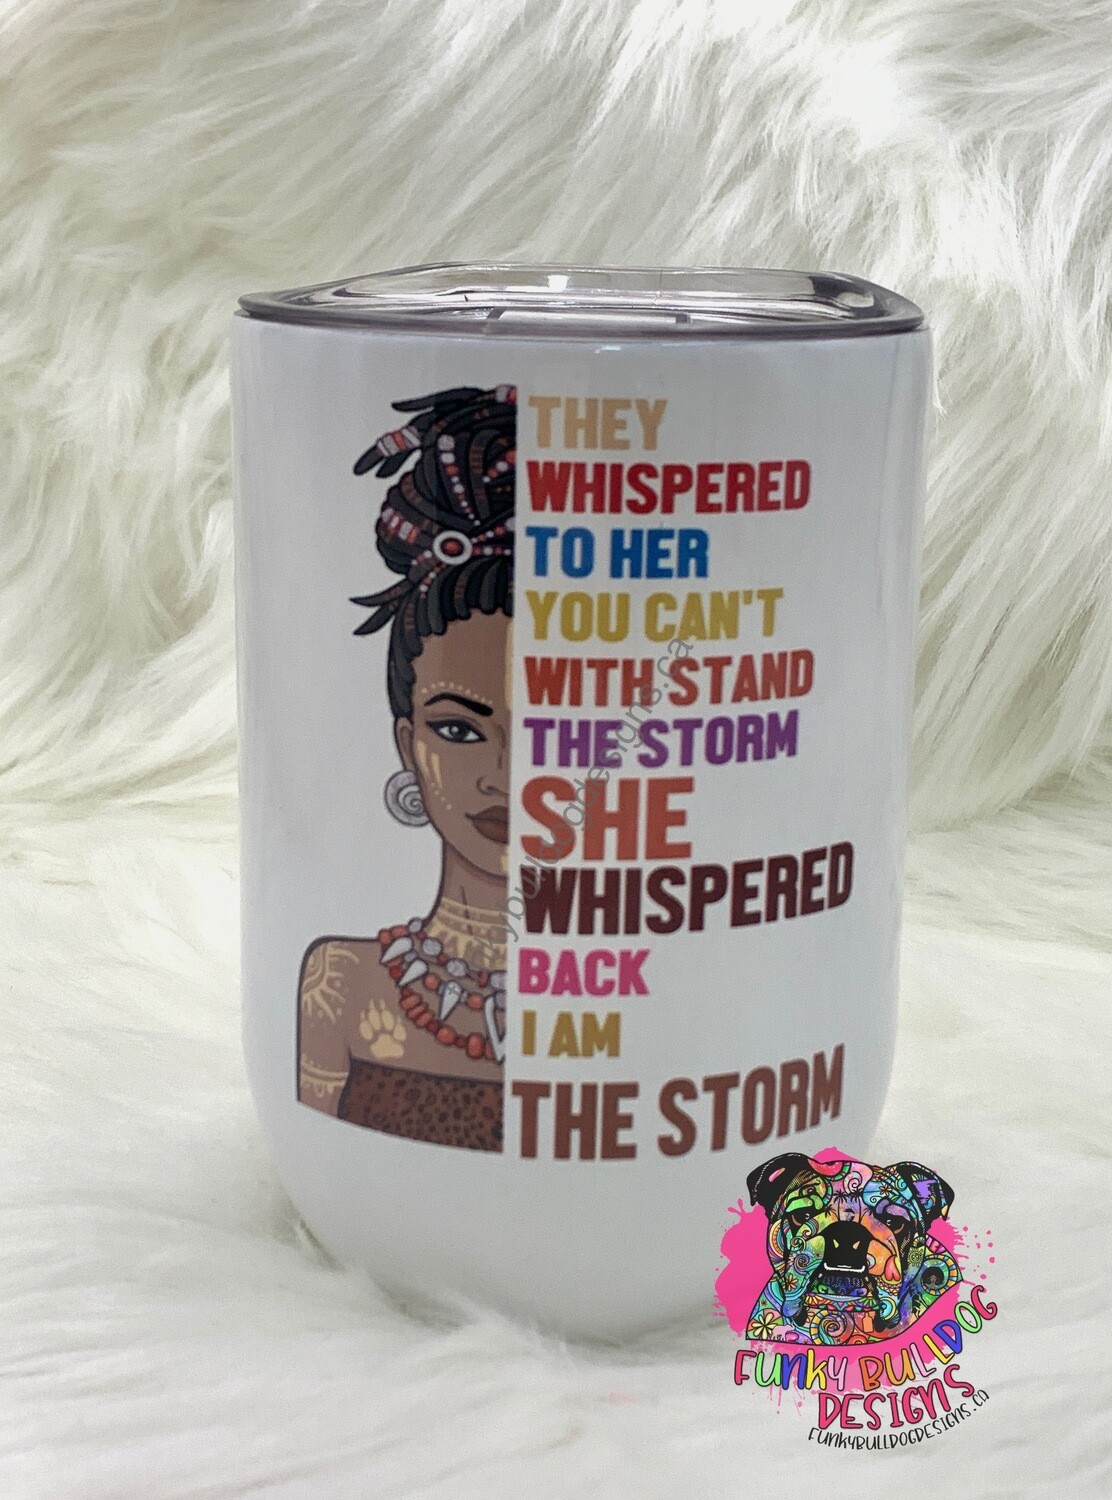 12oz Stainless Steel Wine Tumbler - they whispered to her, you can't withstand the storm